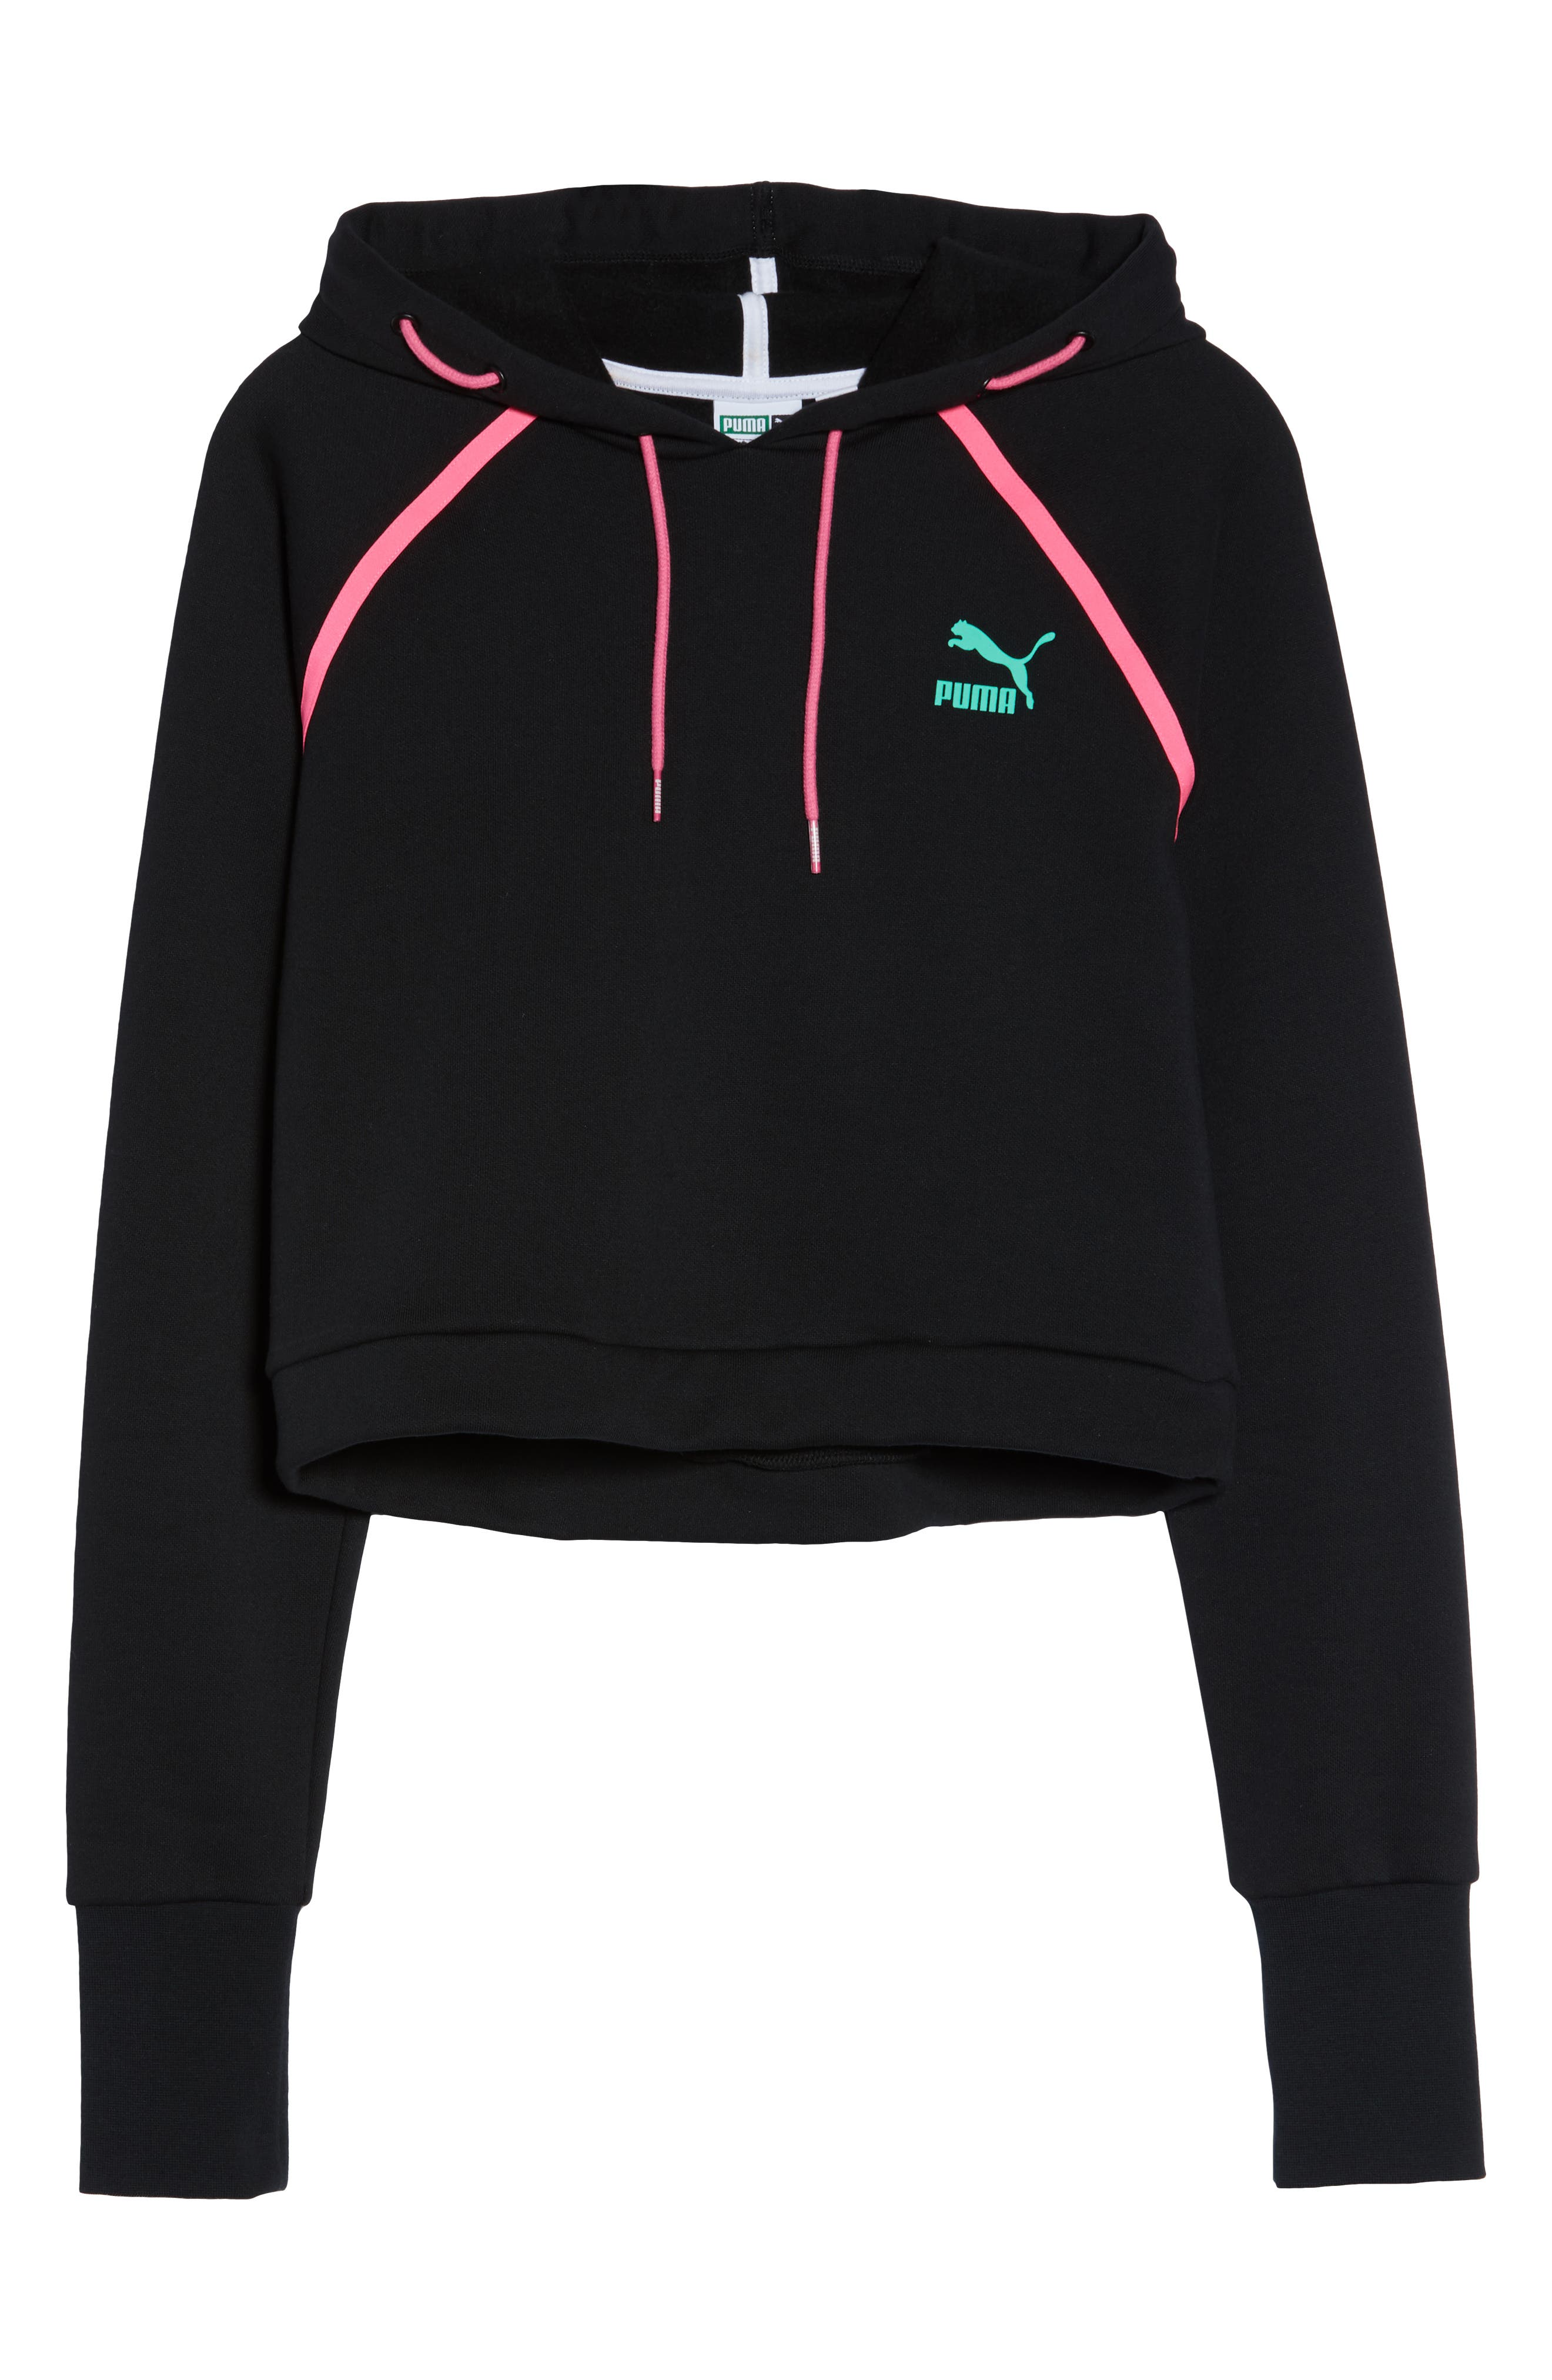 Reflect Hoodie,                             Alternate thumbnail 7, color,                             PUMA BLACK